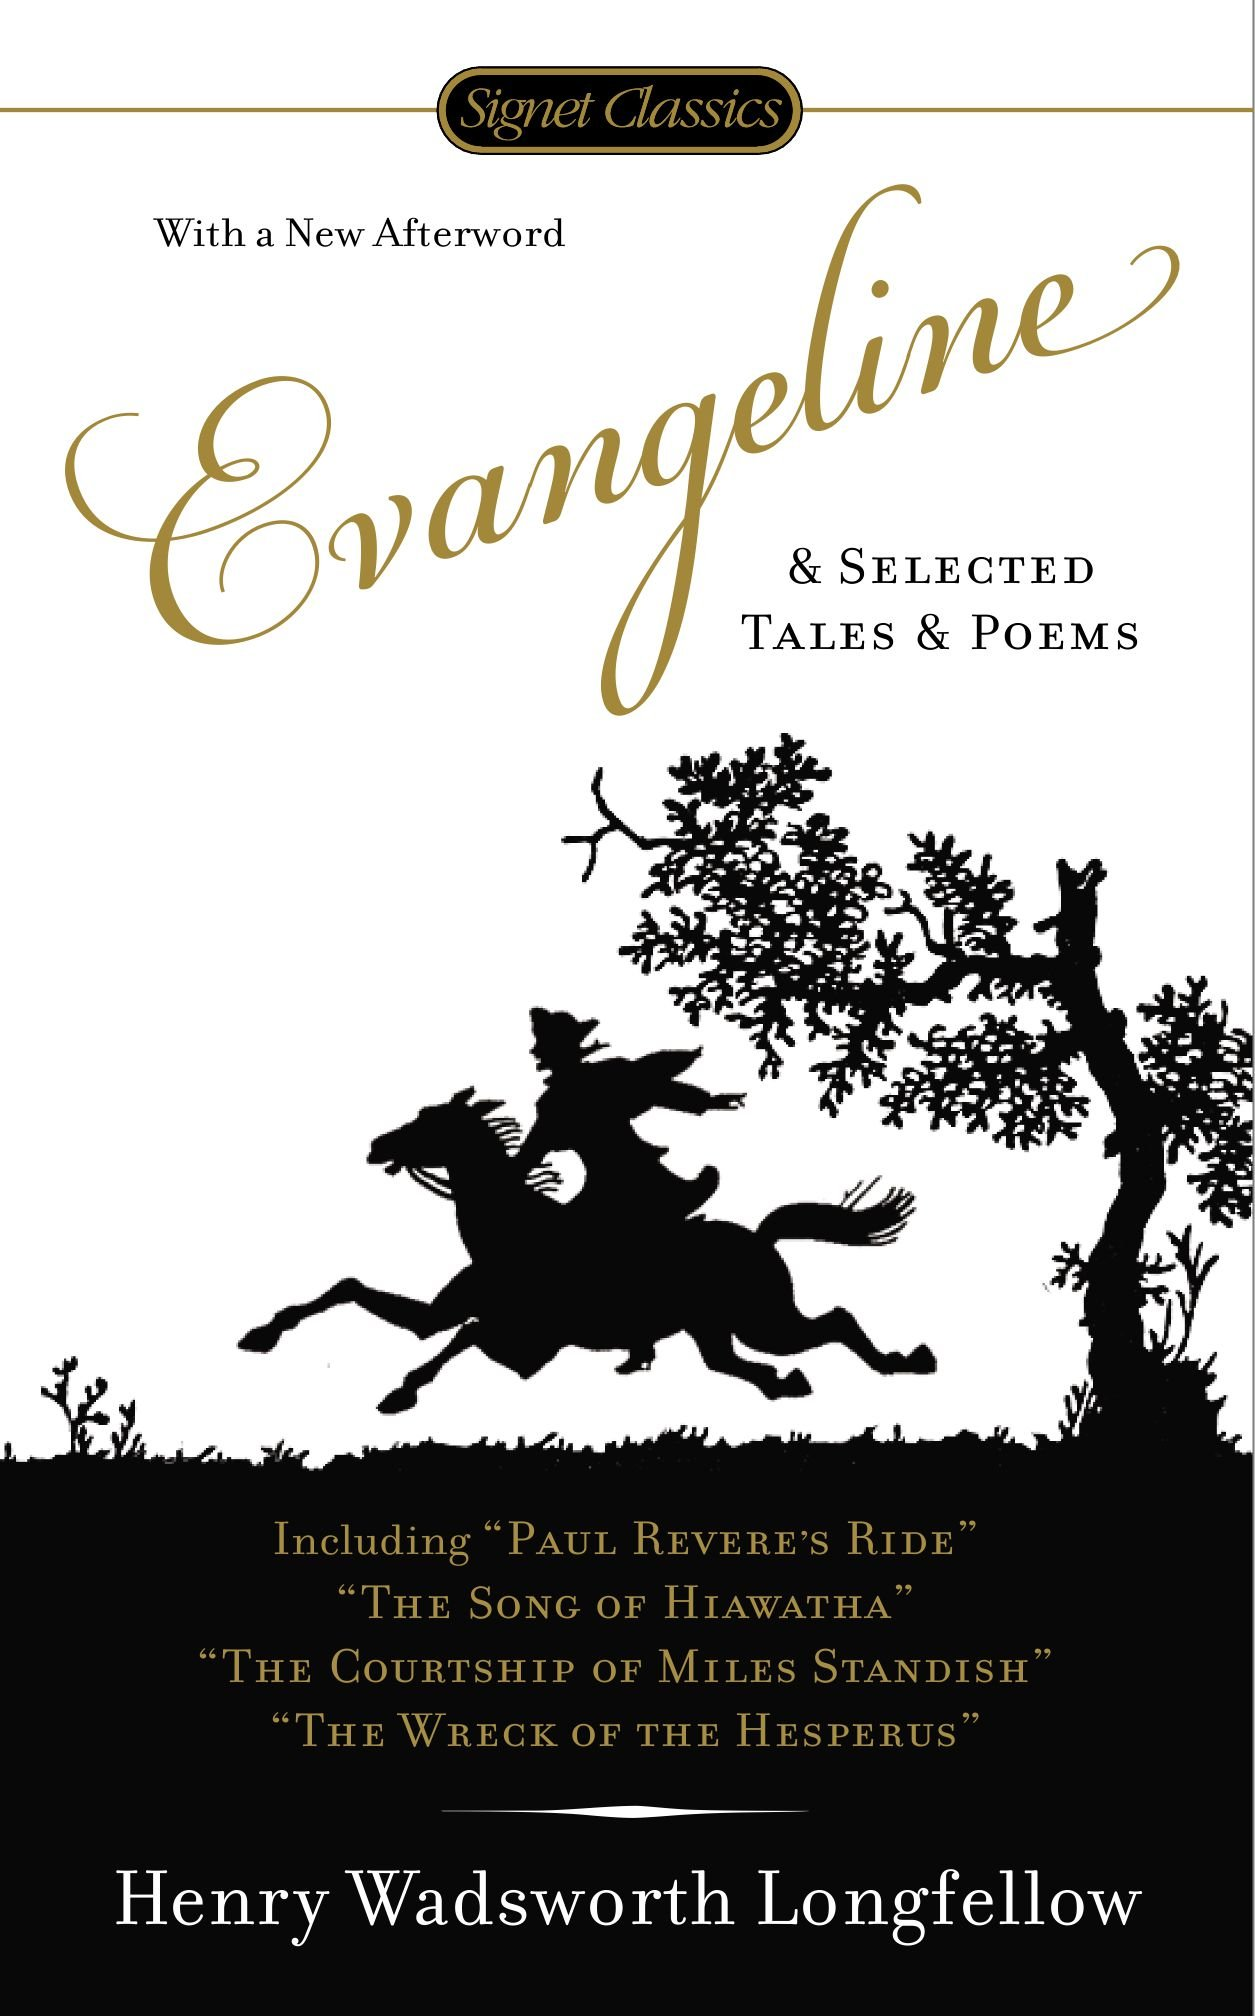 evangeline and selected tales and poems henry wadsworth  evangeline and selected tales and poems henry wadsworth longfellow edward m cifelli horace gregory christoph irmscher 9780451418548 com books